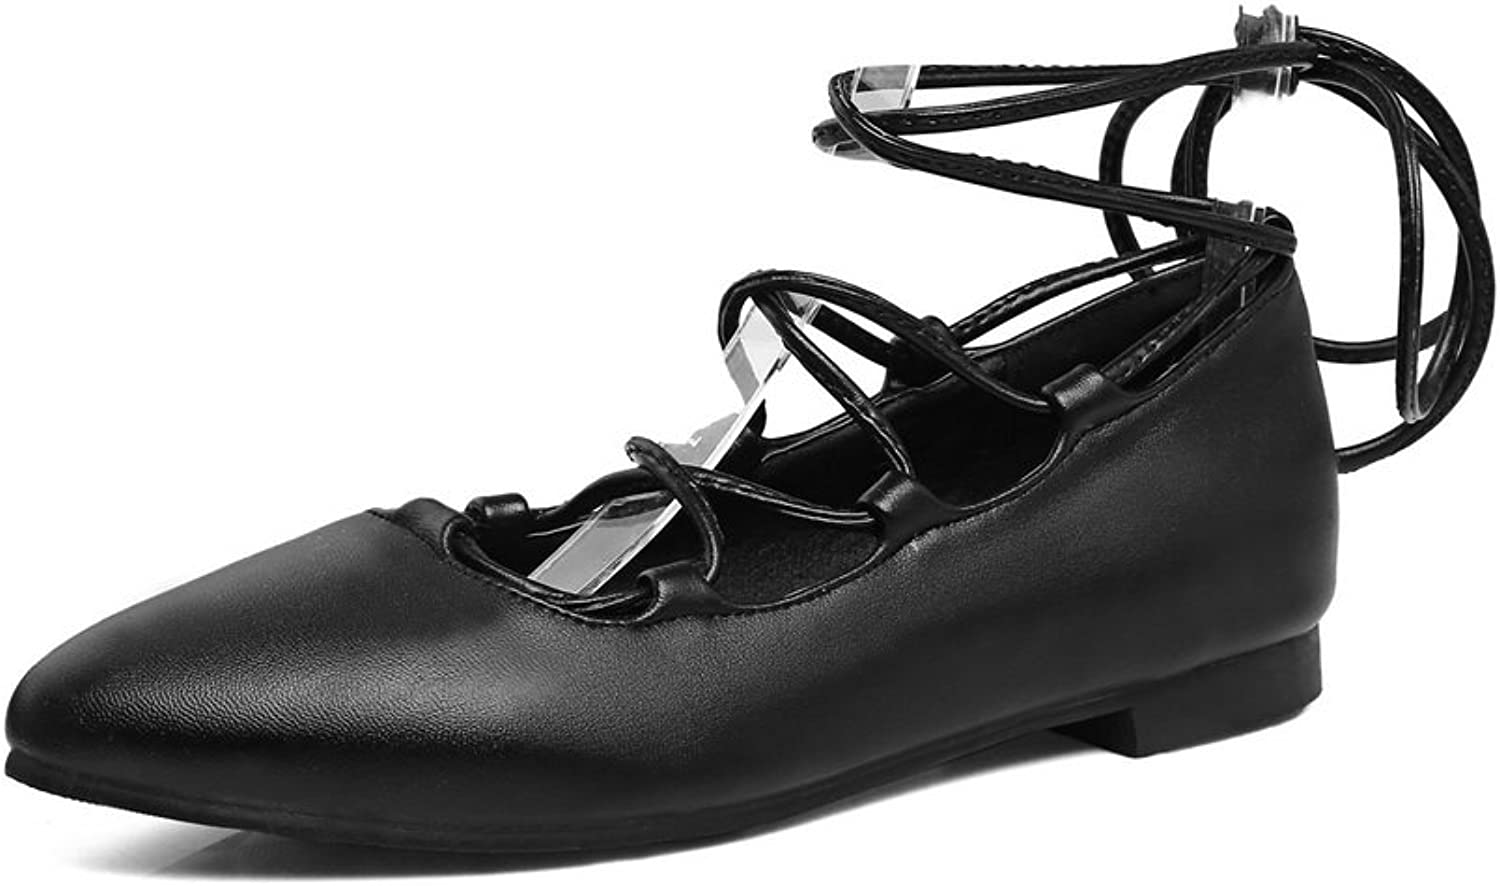 A&N Womens Pointed-Toe Lace-Up Square Heels Urethane Flats shoes